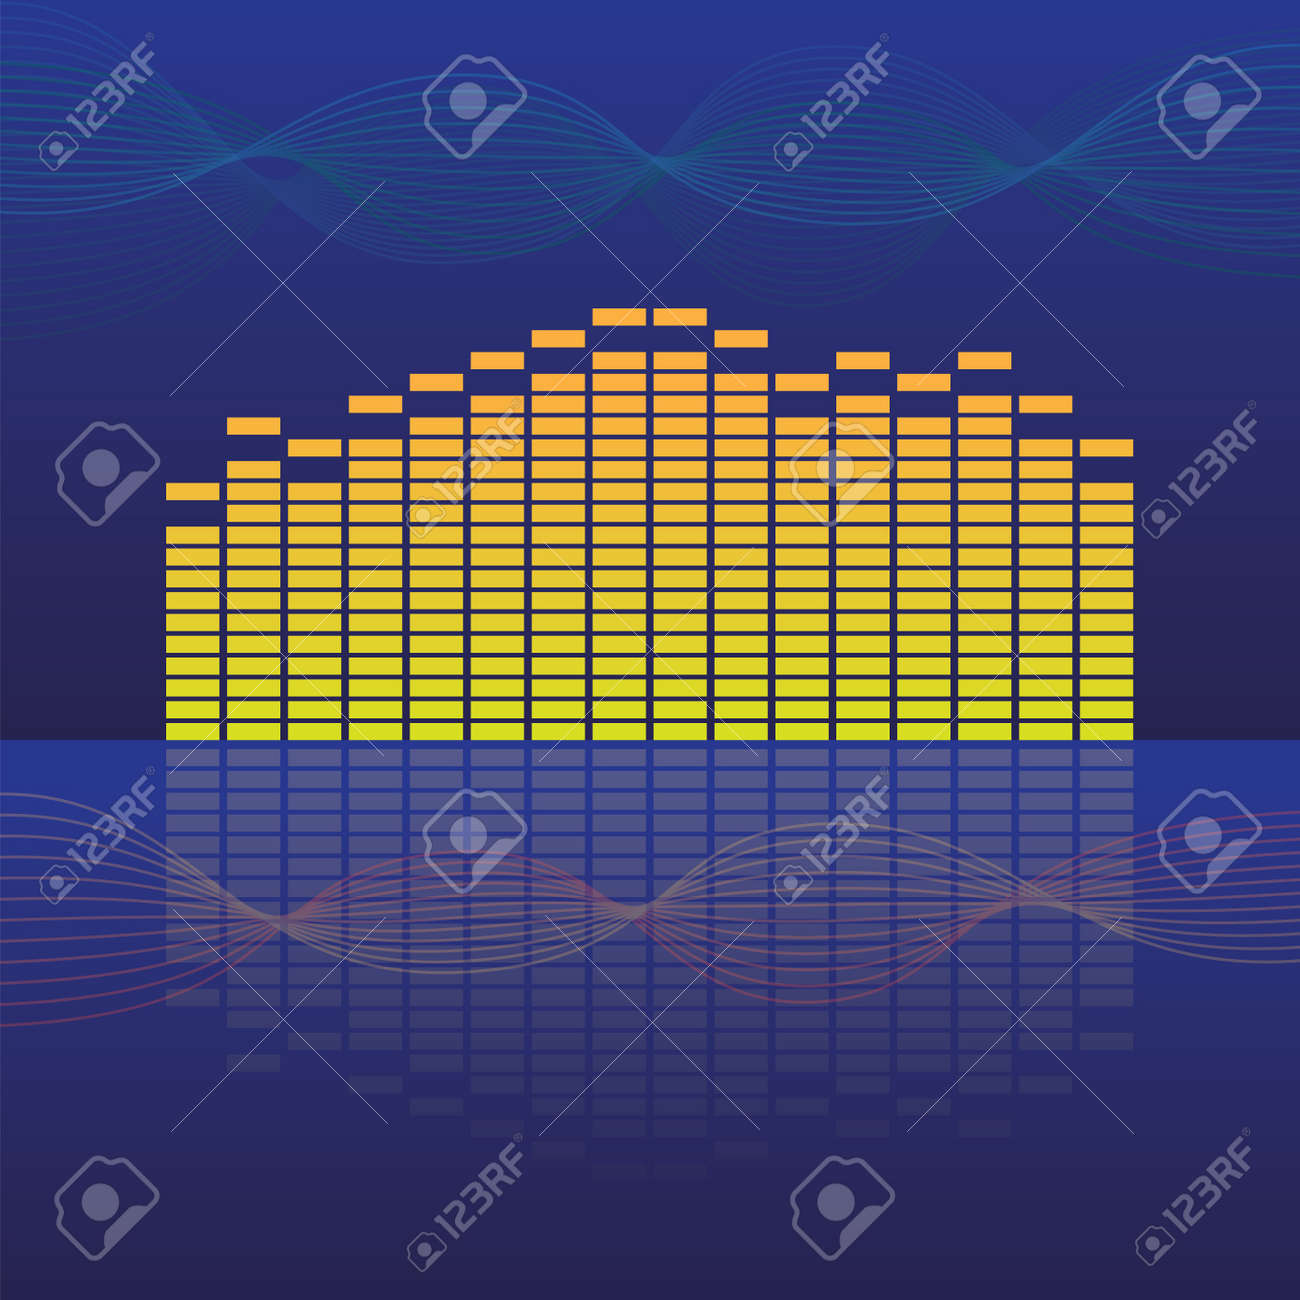 16 band equalizer on abstract background - illustration Stock Vector - 11496952